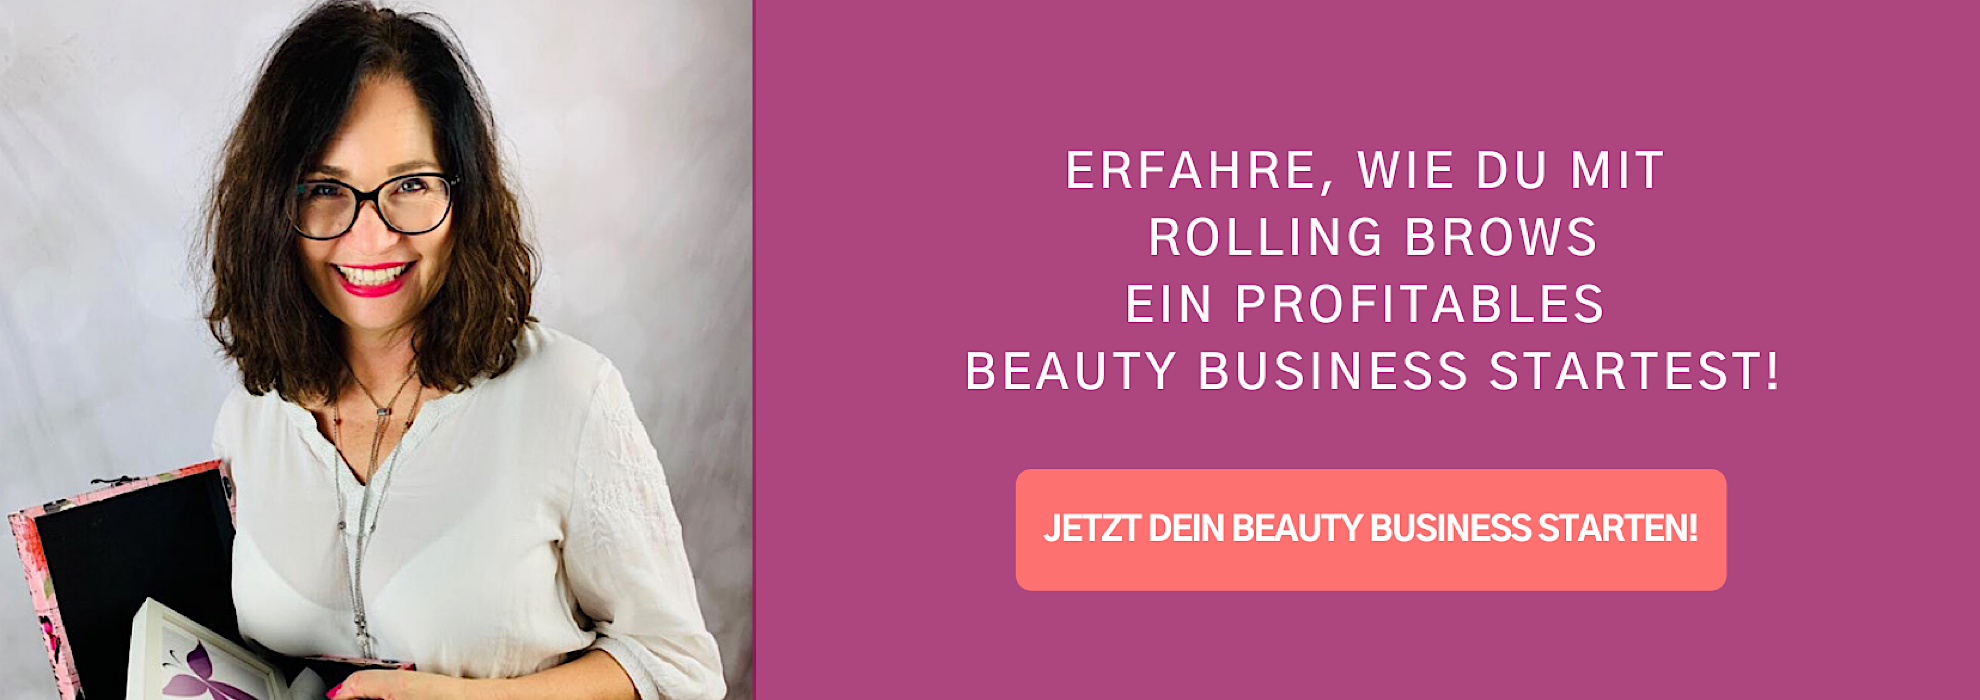 NU BEAUTIES AKADEMIE: Unser Knowhow für Dein exklusives Business